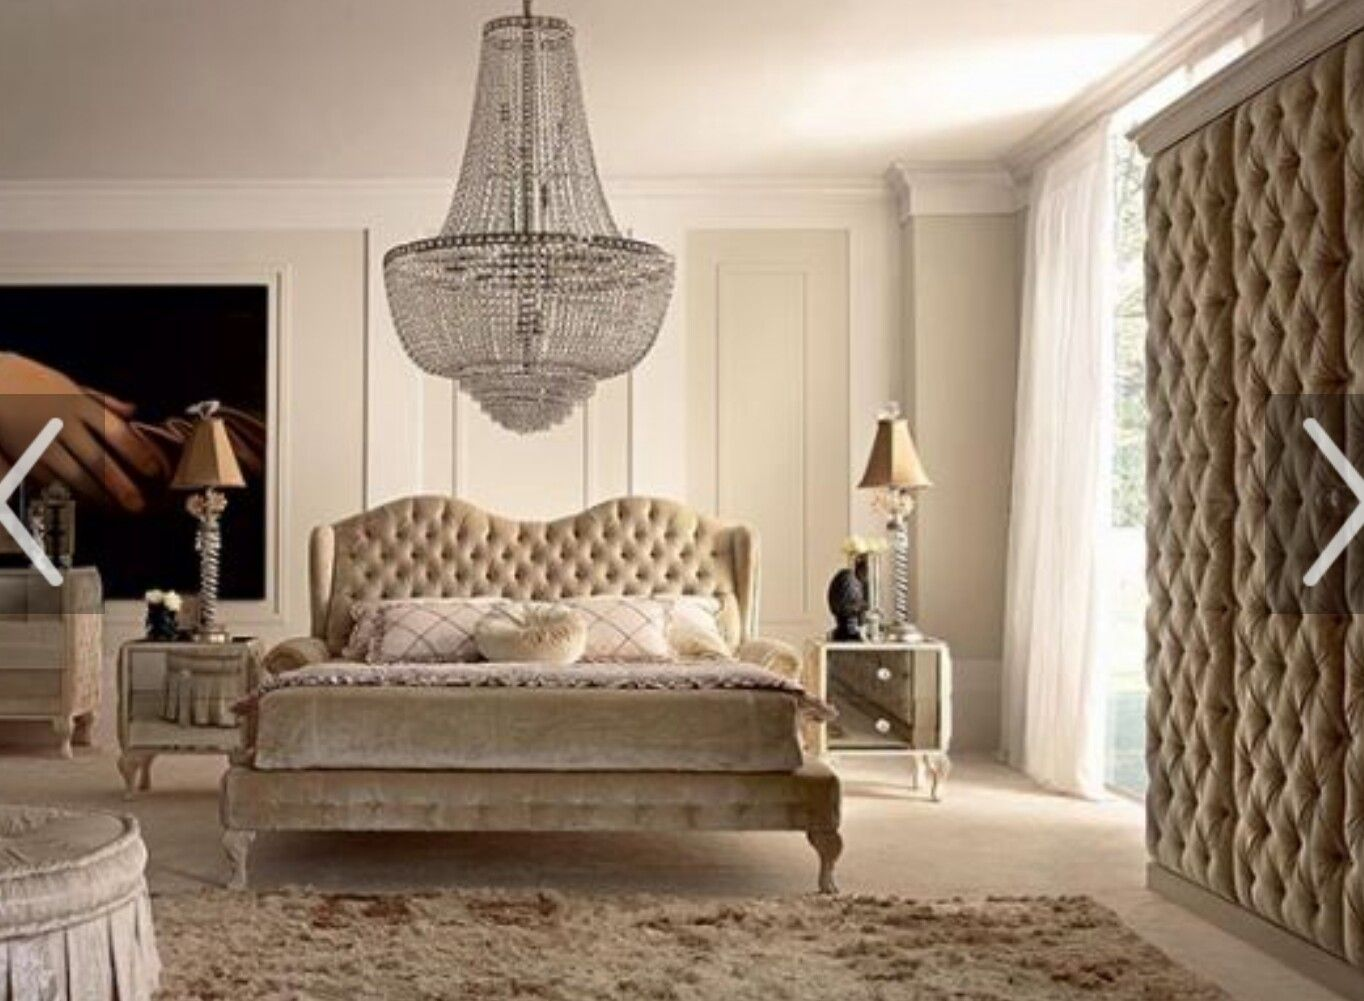 Luxury Bedroom Suggestions By Dolfi Dolfi